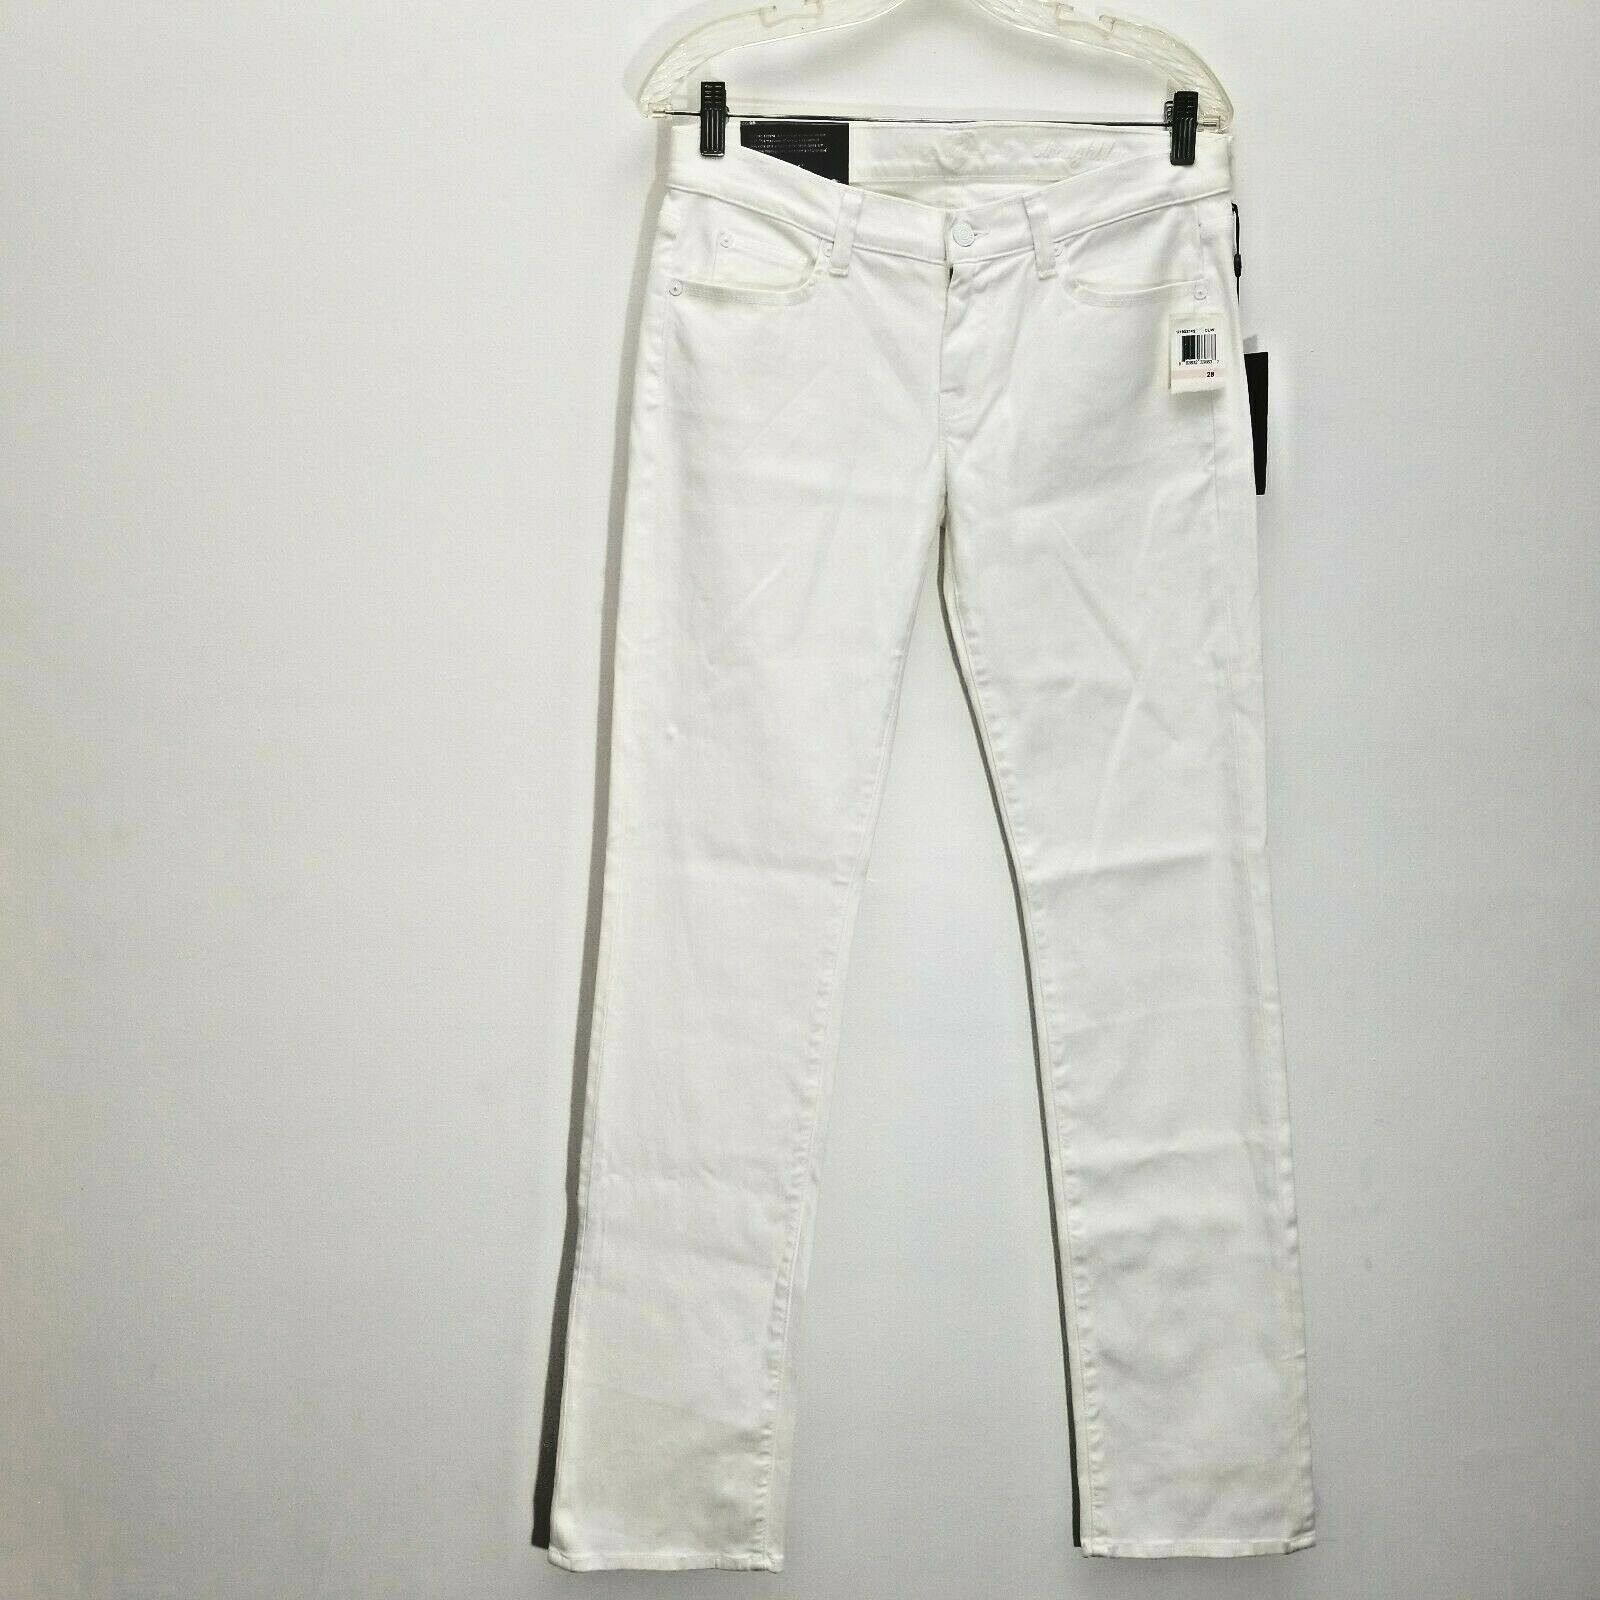 7 For All Mankind Womens Classic Straight Leg Jeans 28 Stretch Denim Clean White